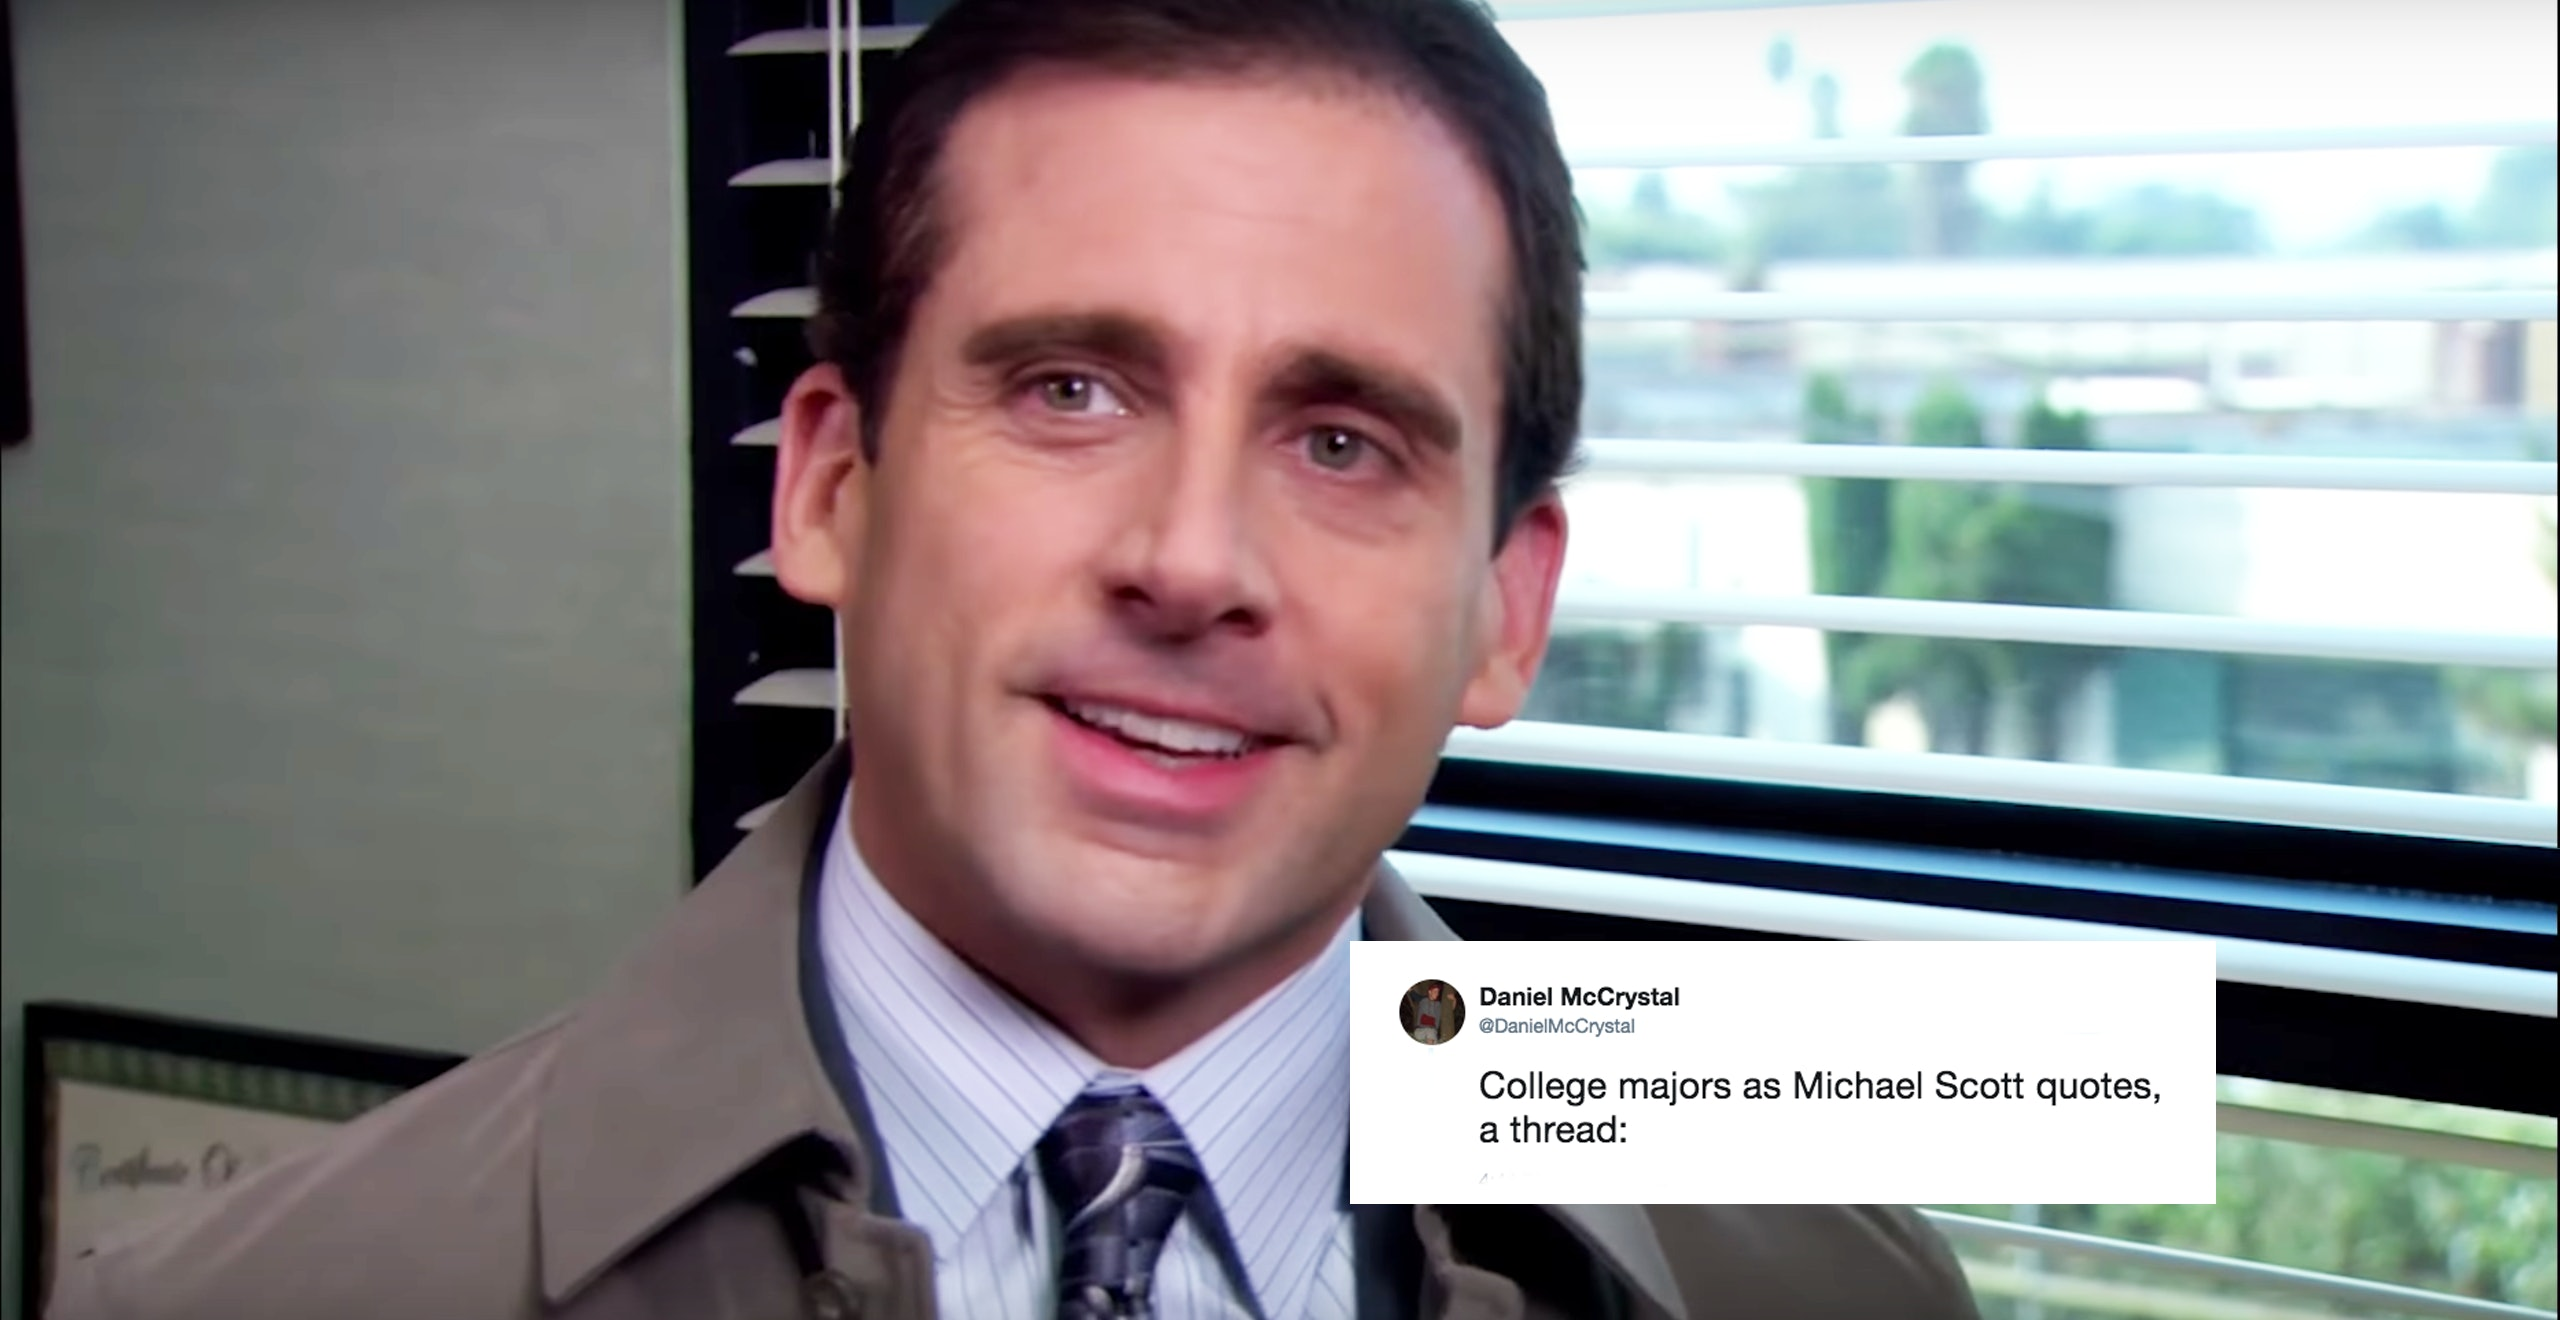 The Office Quotes | College Majors As Michael Scott Quotes Is The Office Viral Thread